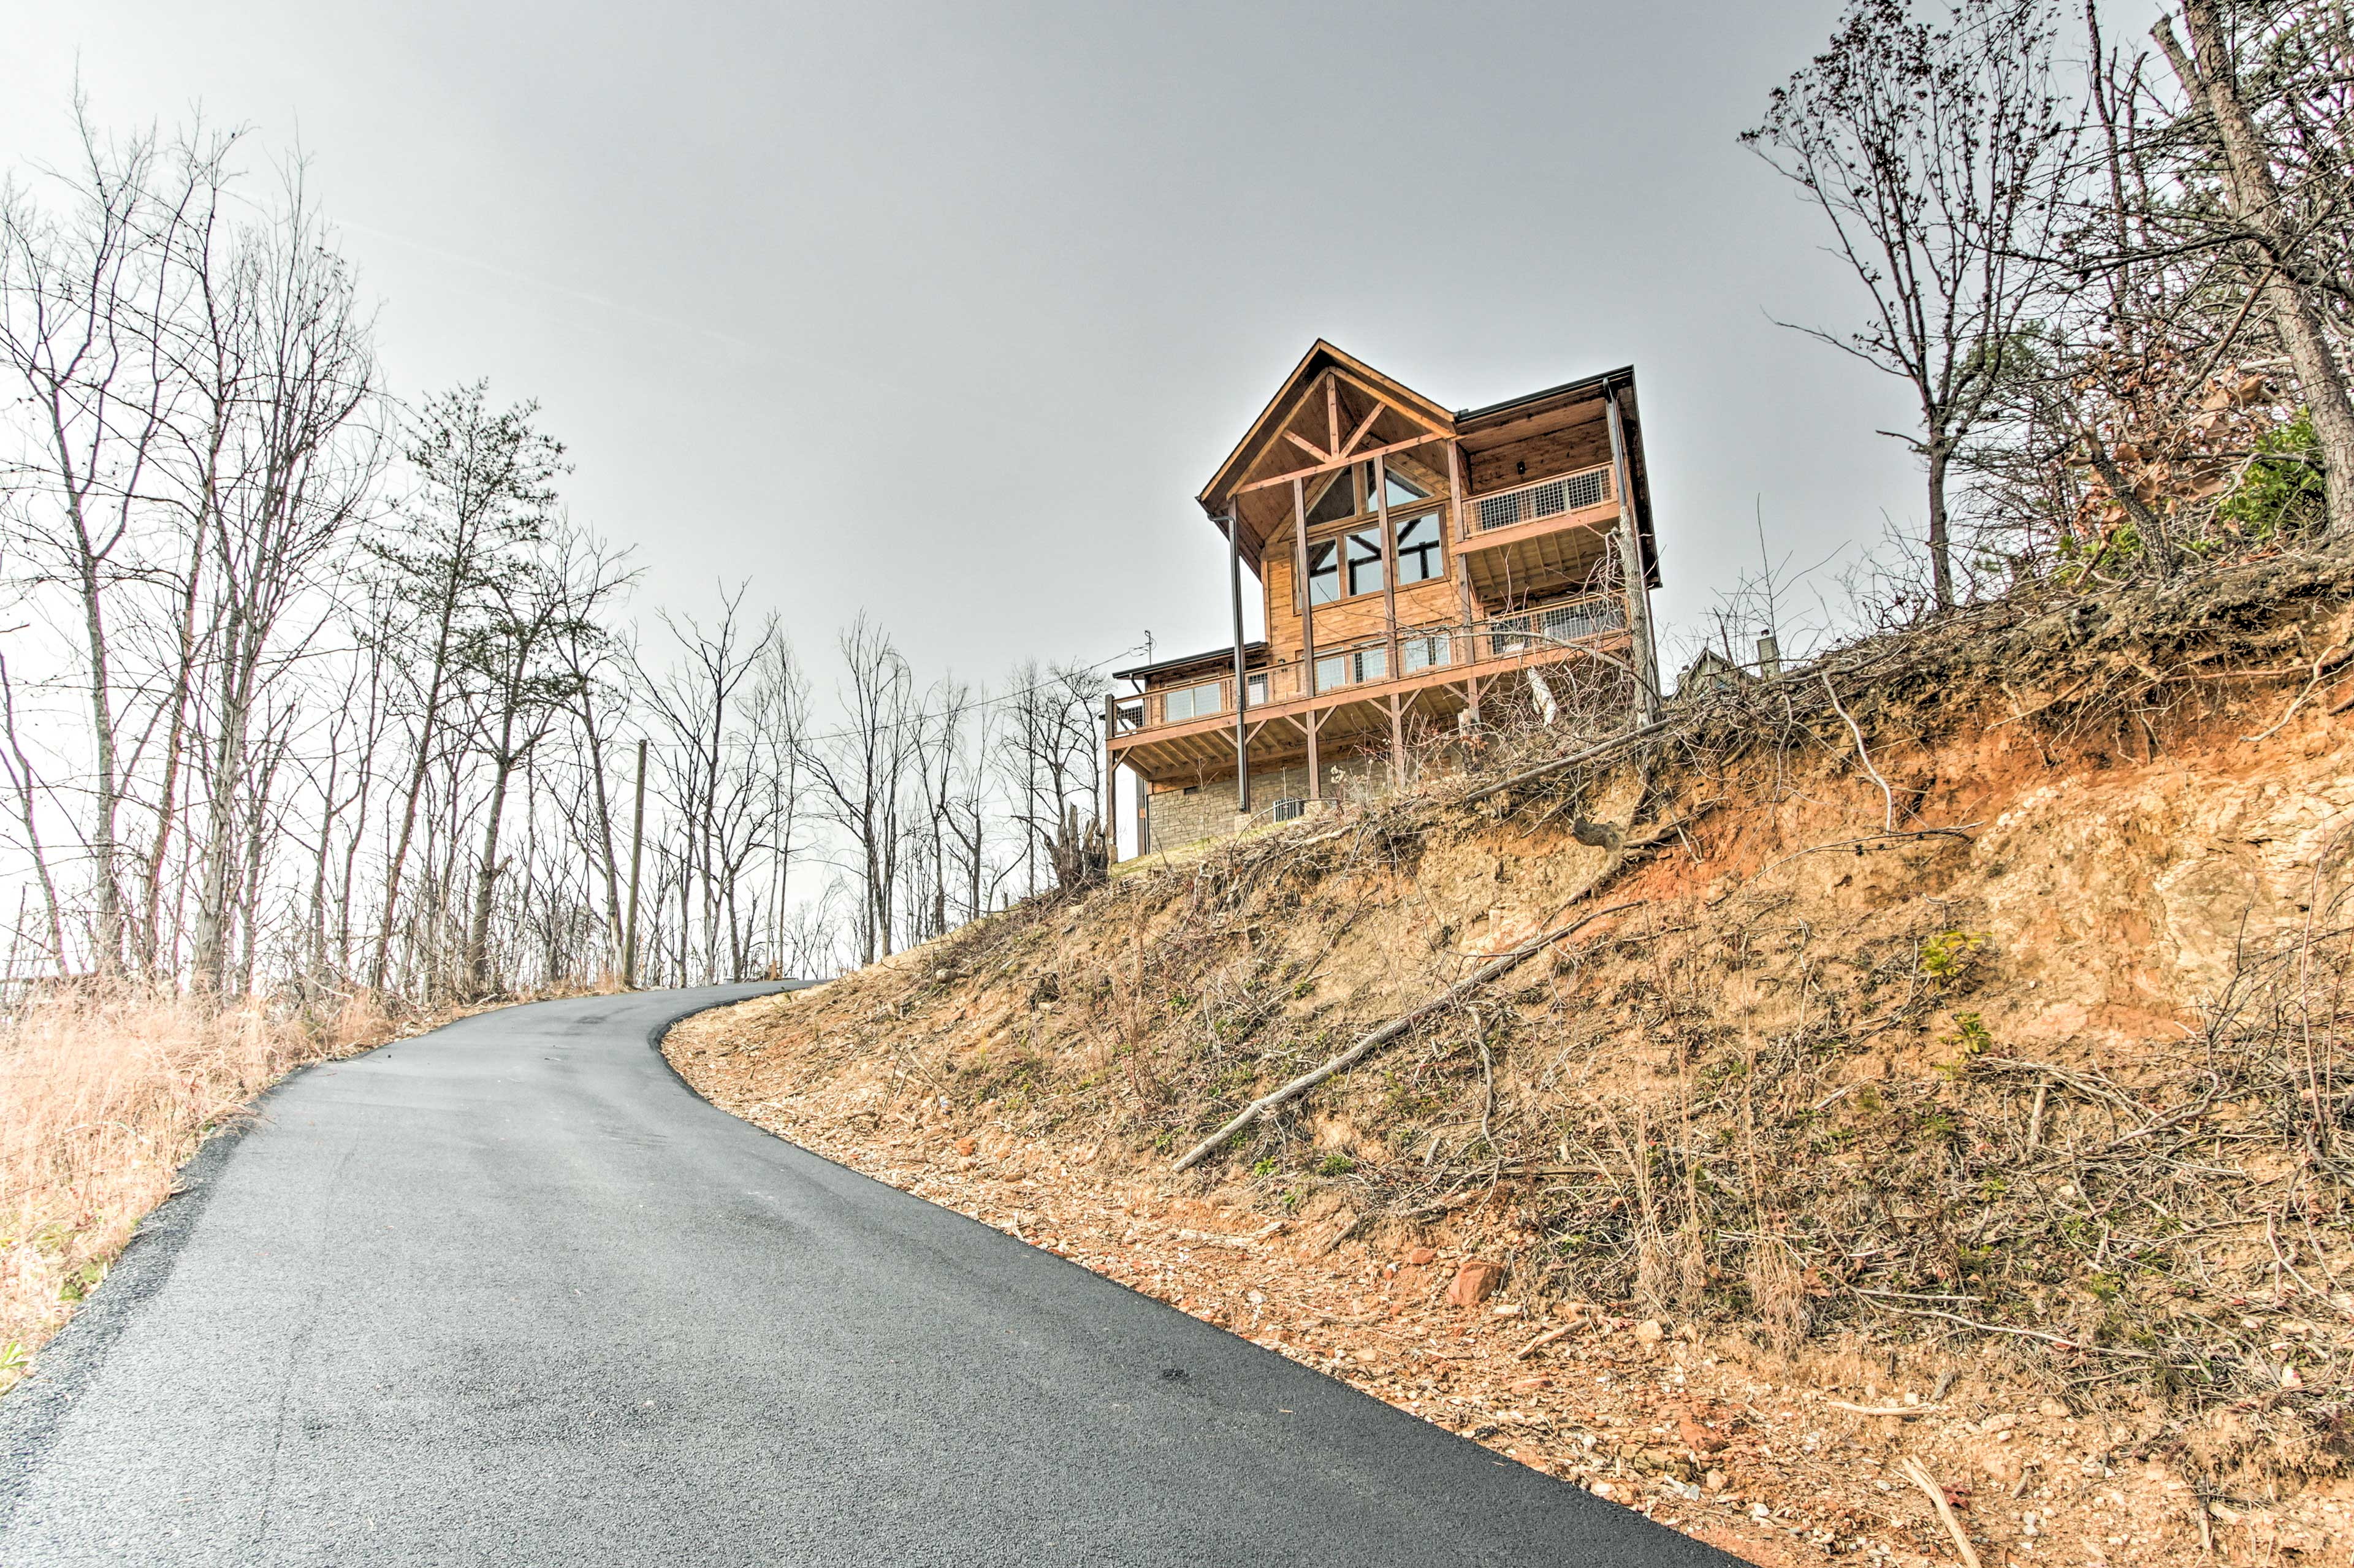 Gatlinburg and Pigeon Forge are both only minutes away!